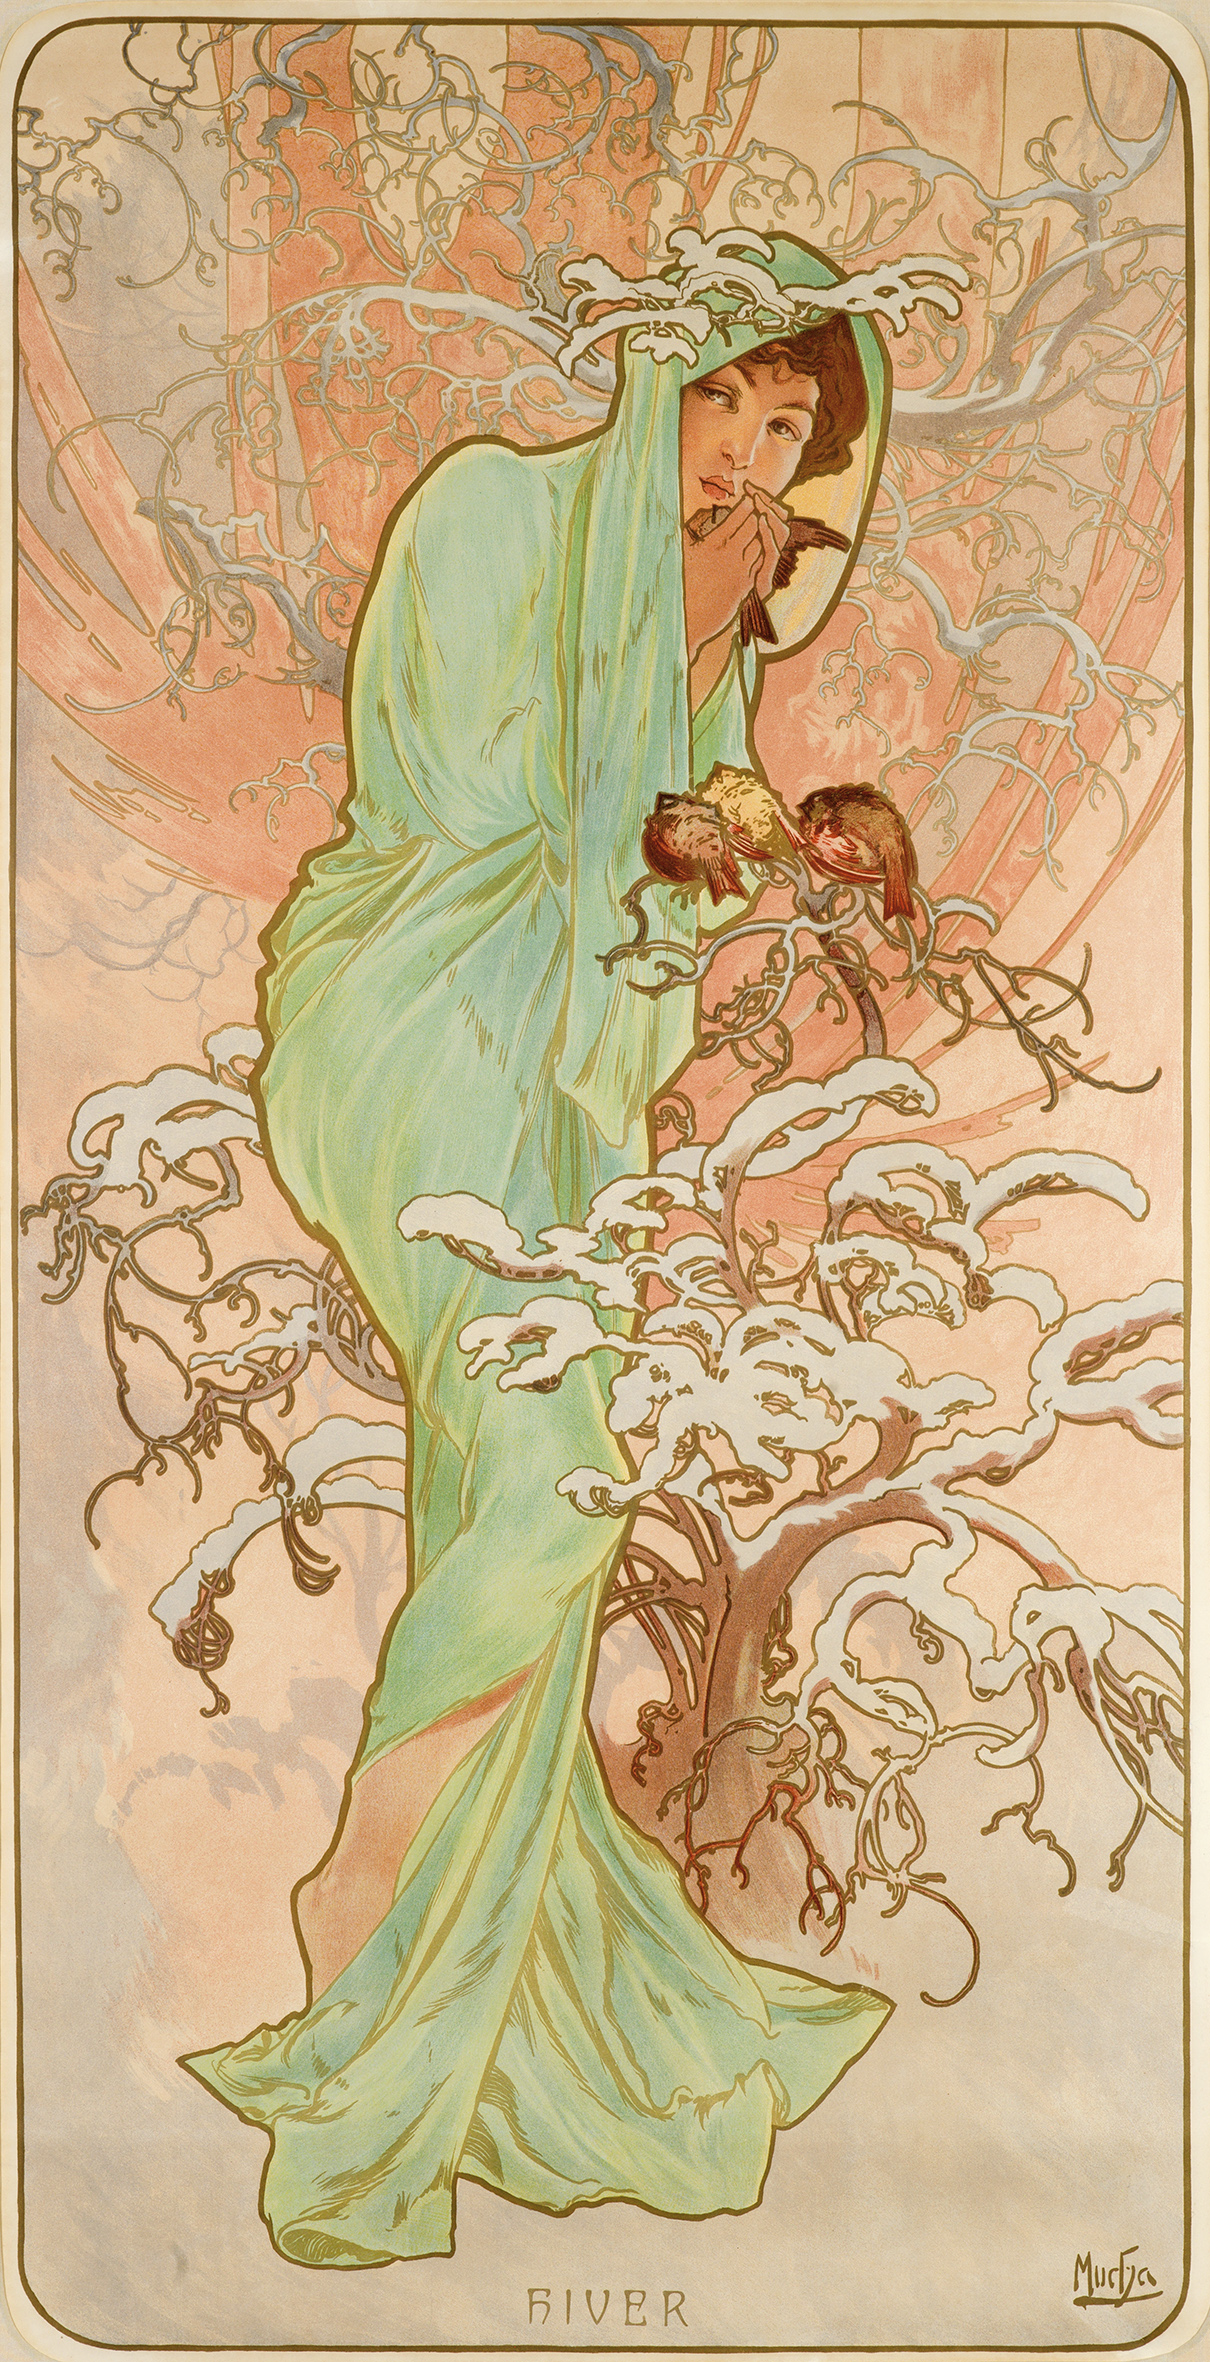 illustrational poster of a woman wrapped in a cloth amongst flowers